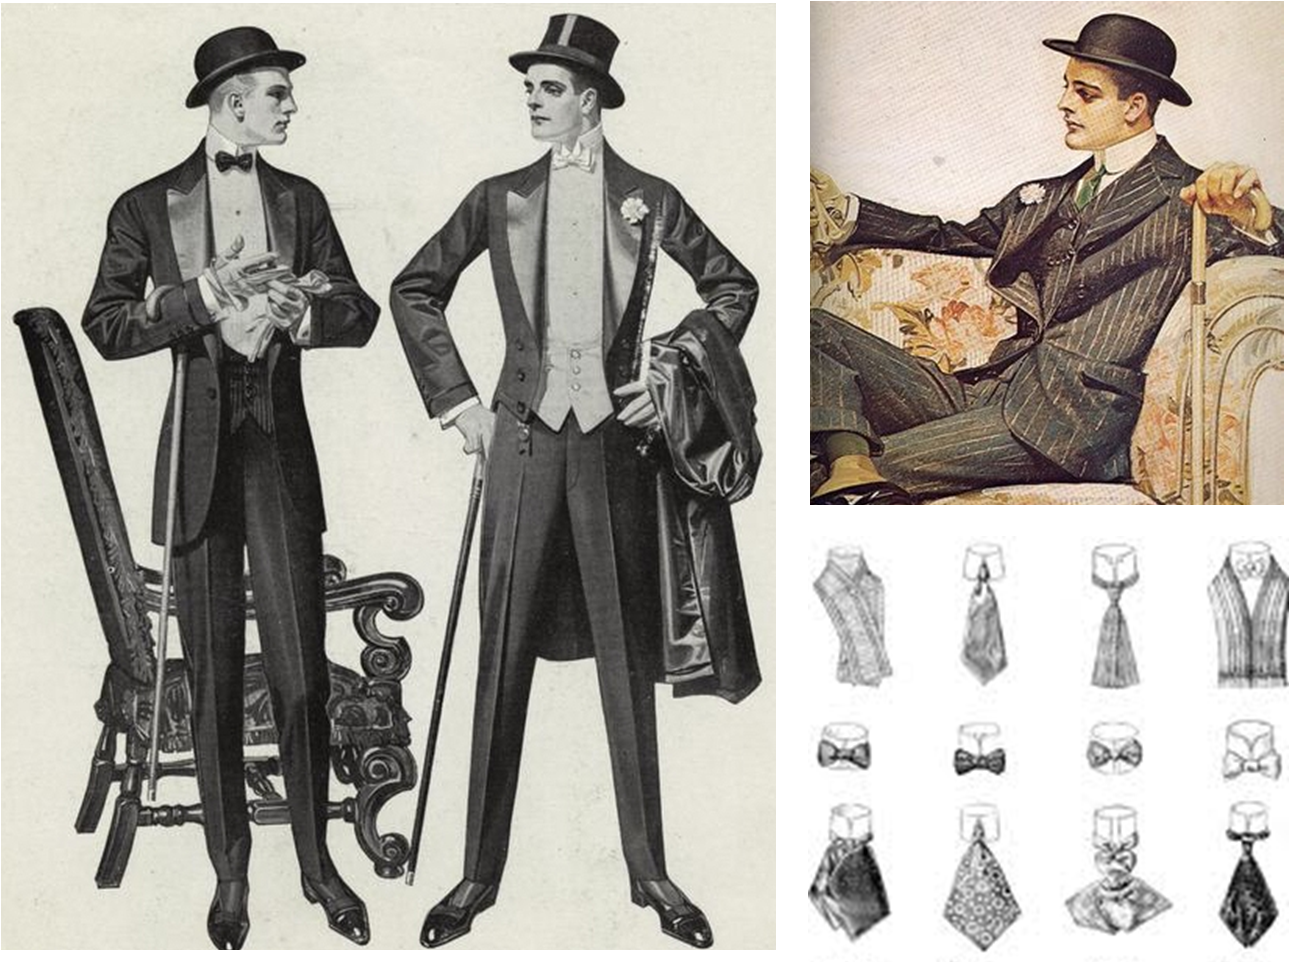 Fashion 1910 to 1920 - Men S Fashions Around The Time The Mission Was Founded In 1911 Men S Fashions From 1912